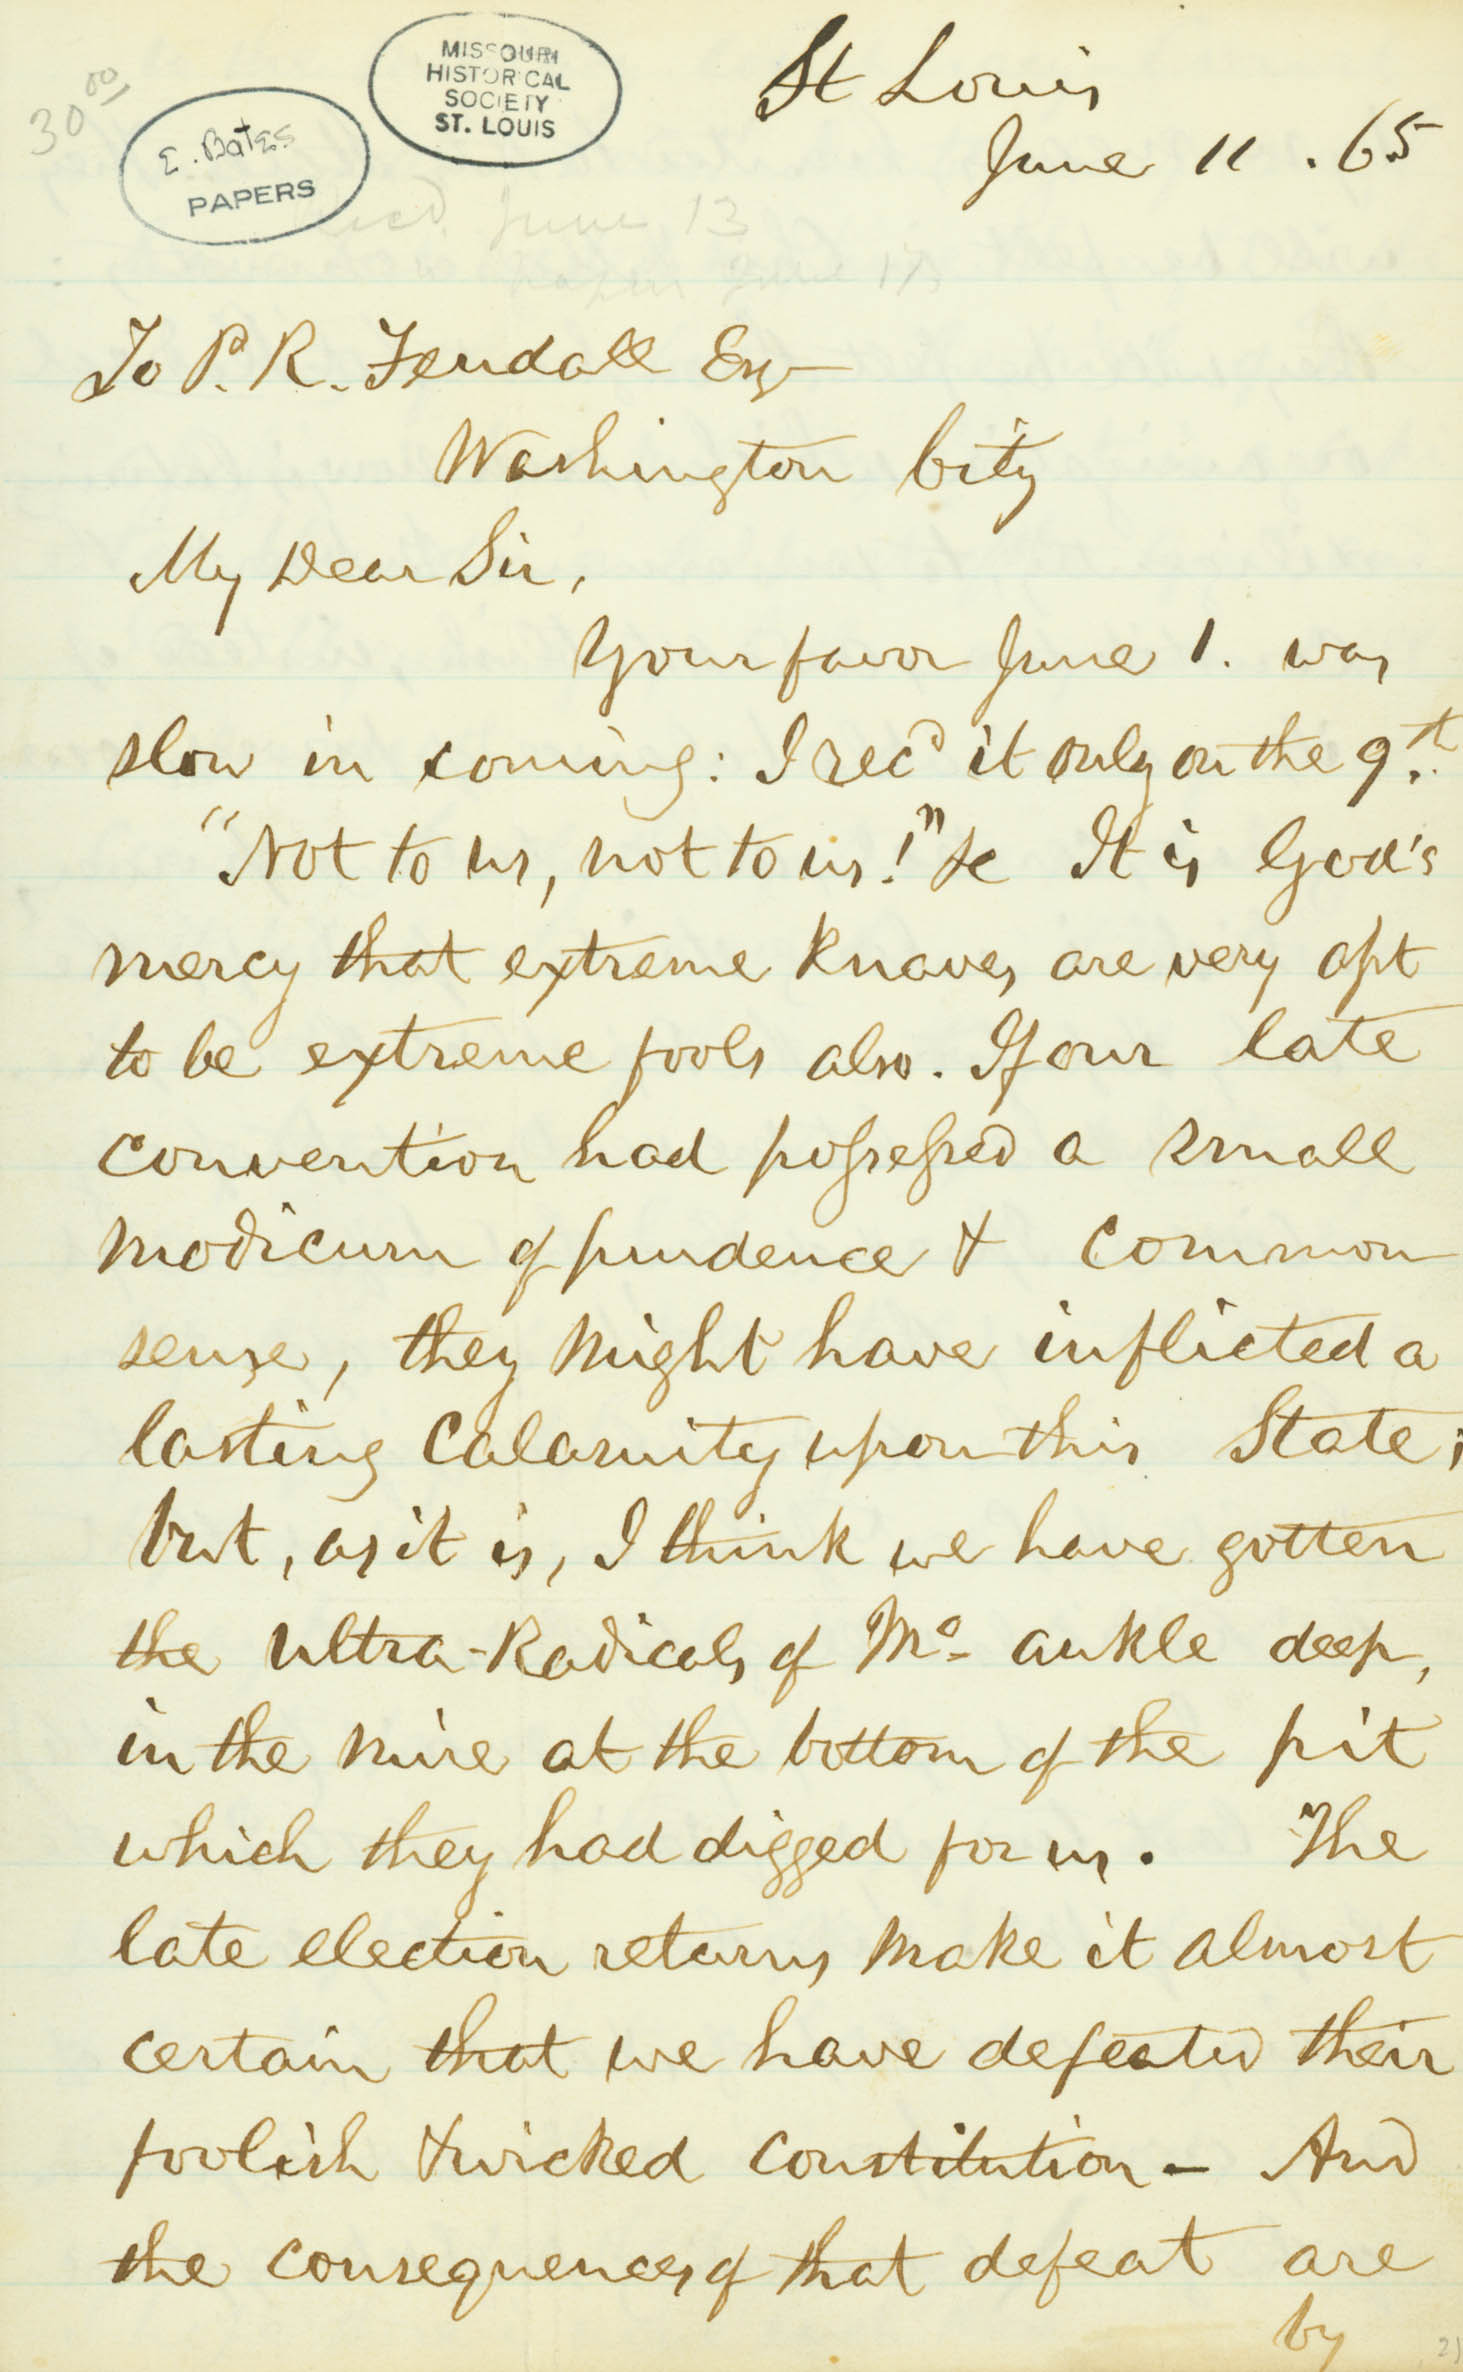 Letter of Edward Bates, St. Louis, to P. R. Fendall, Esq., Washington City, June 11, 1865